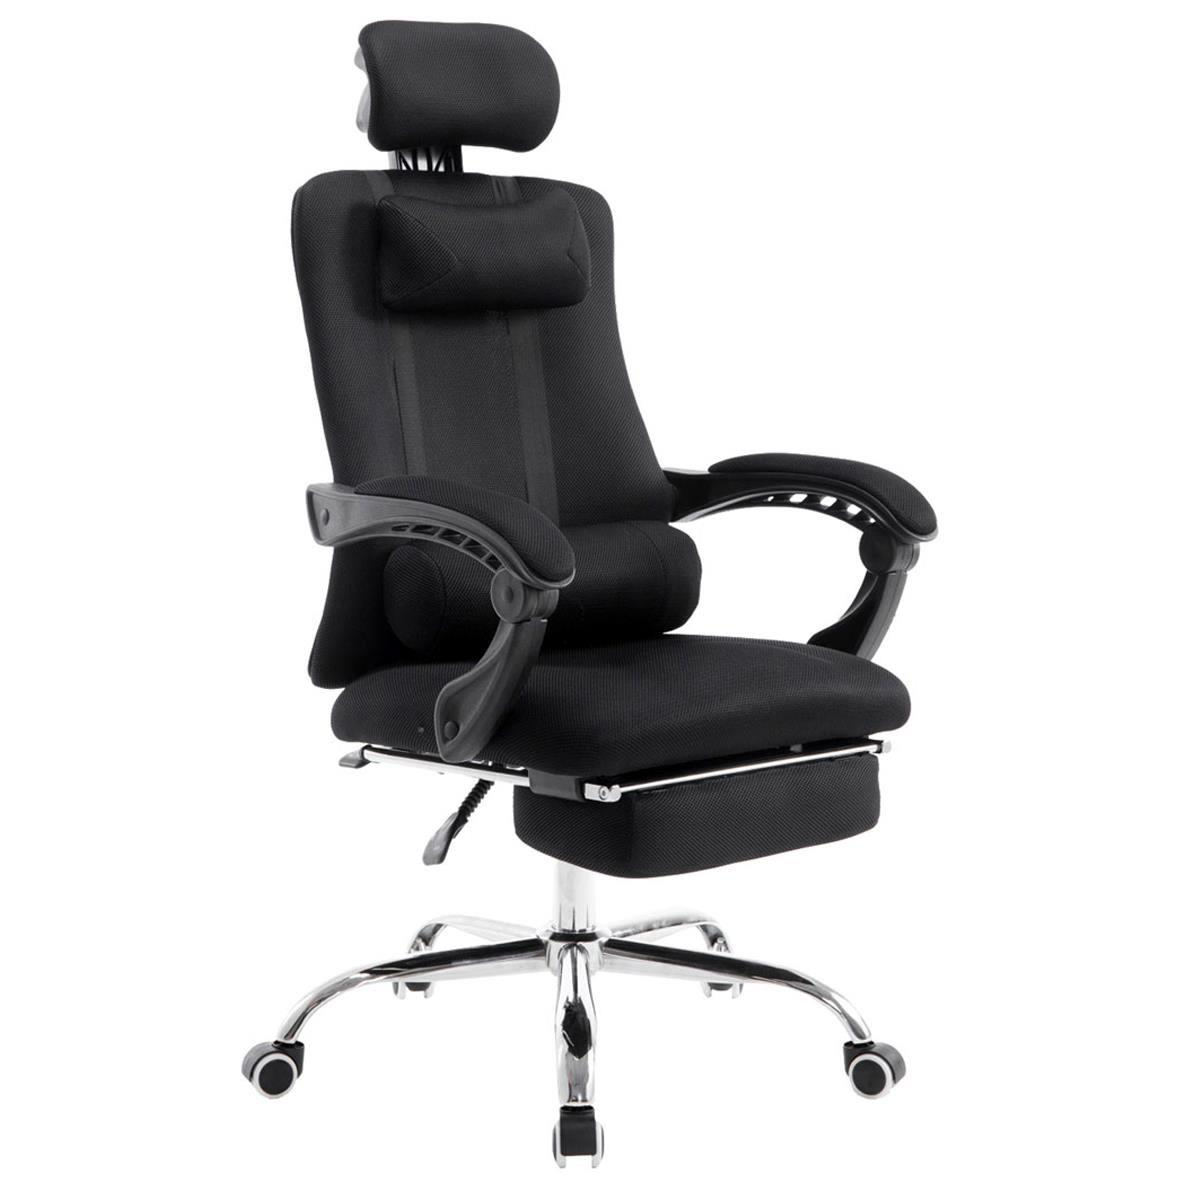 Silla de Oficina / Gaming ANTARES, Reclinable, Reposapiés Extensible, en Malla Transpirable color Negro